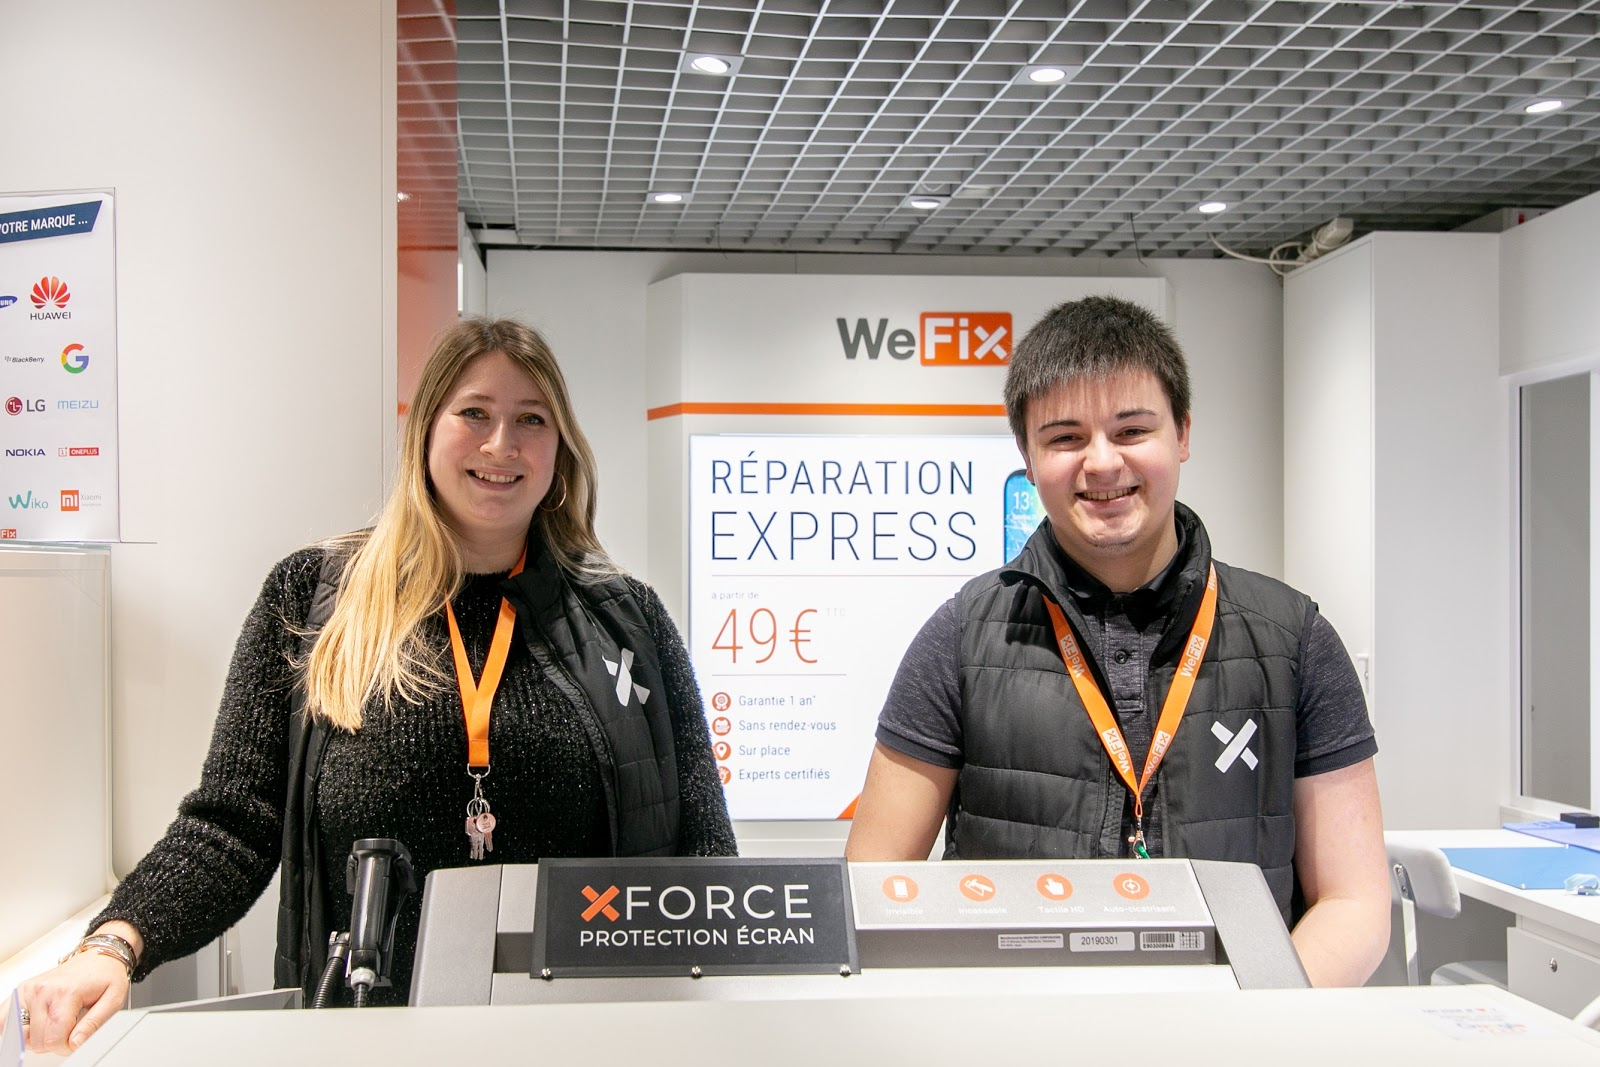 photo de la boutique de WeFix - Fnac Angers